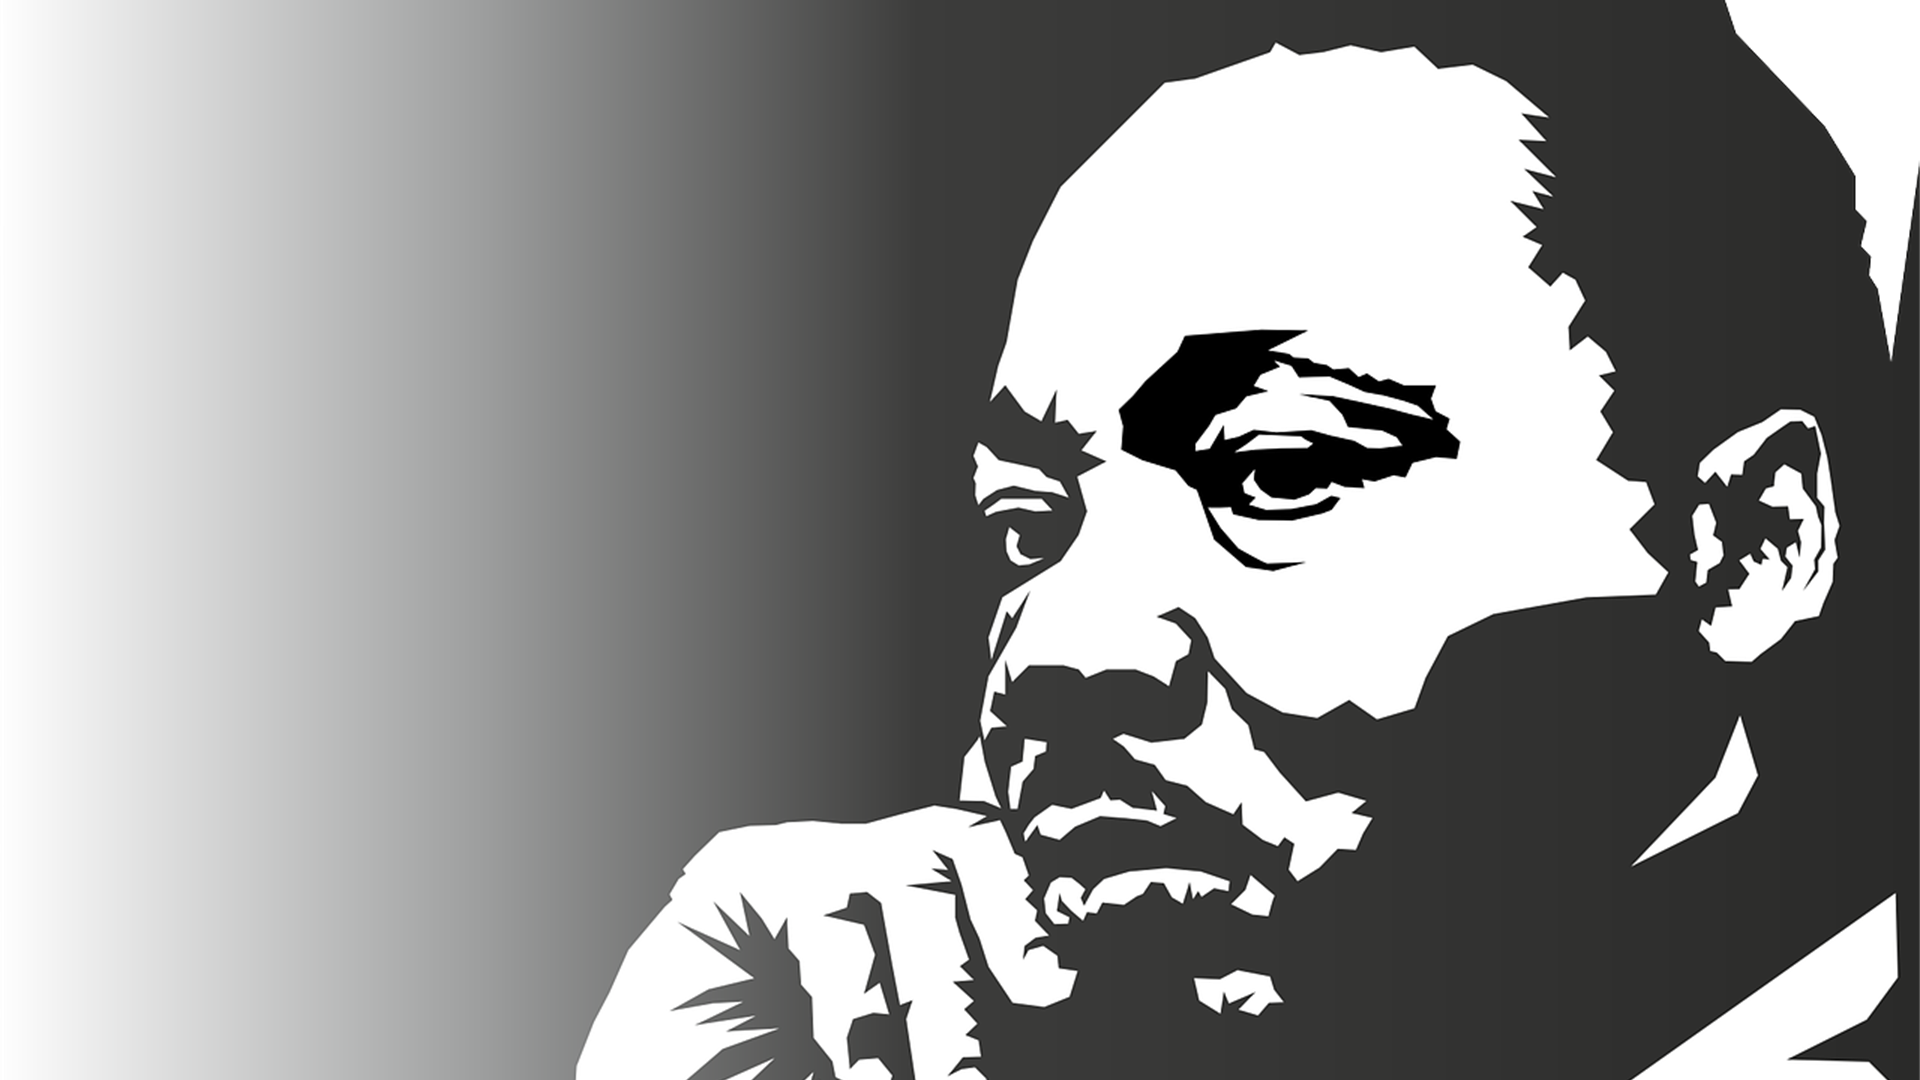 Martin Luther King 155551 1280